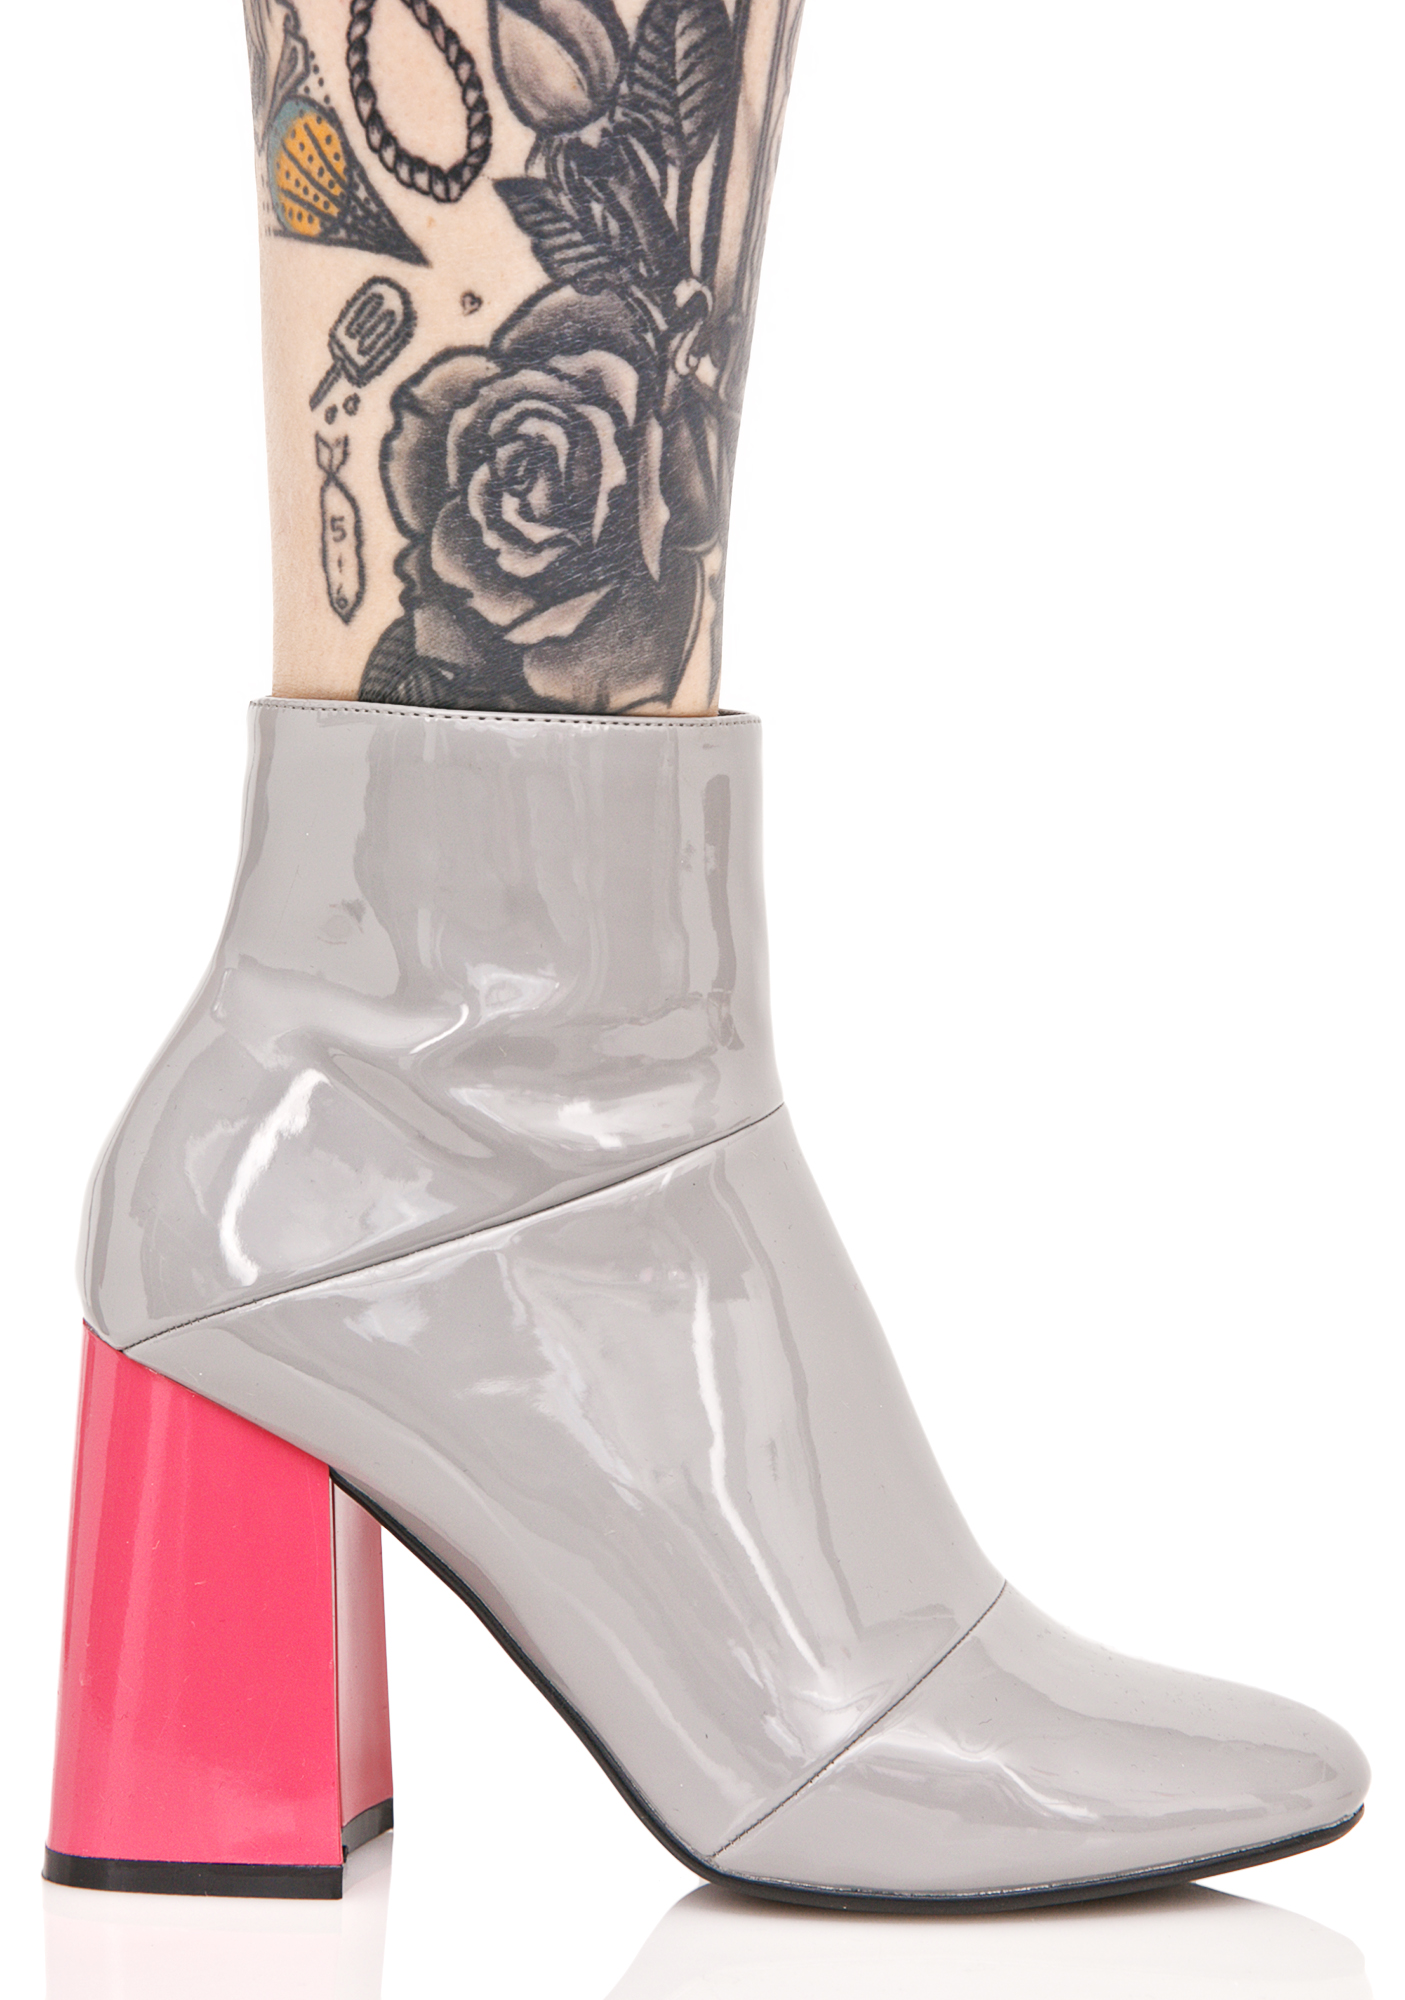 Grey Patent Leather Ankle Boots